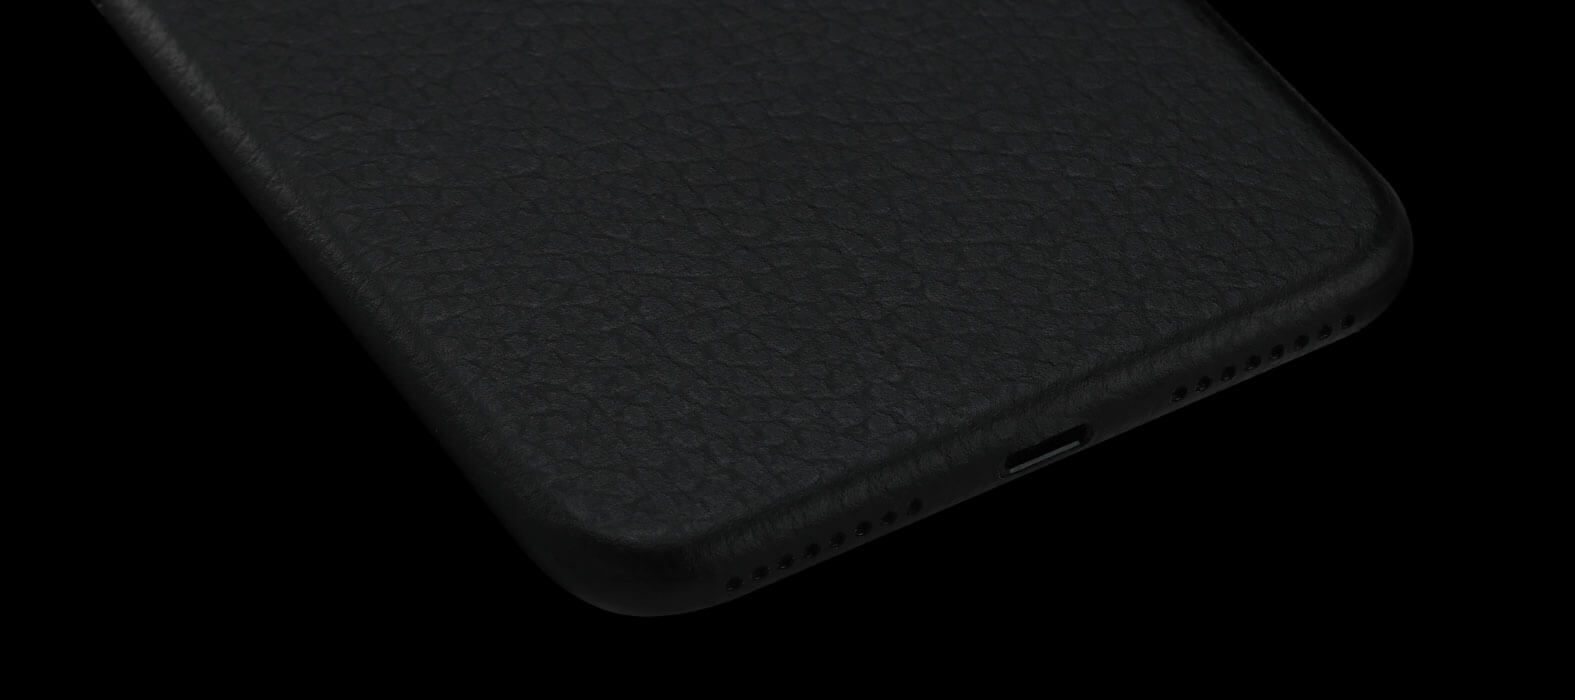 Black leather iPhone 7 Plus Skins & Wraps